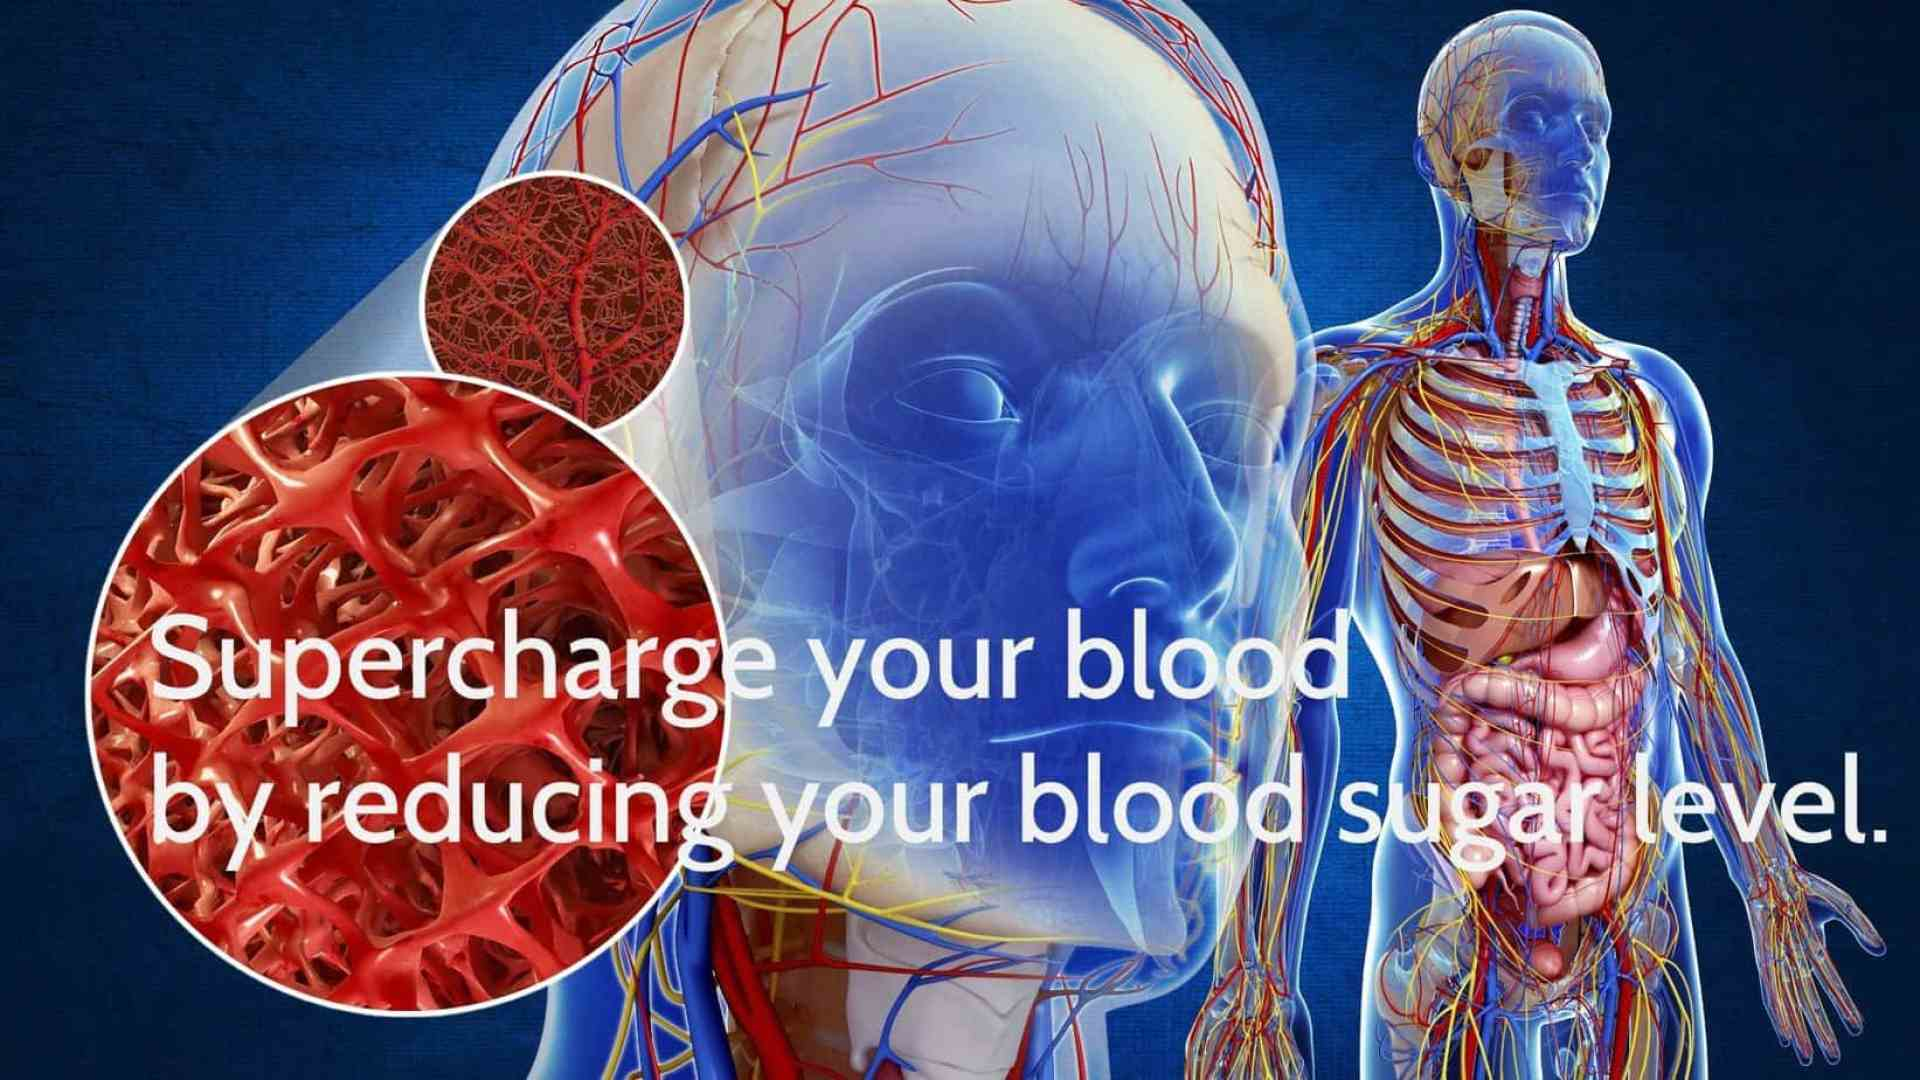 8 steps to lower your blood sugar